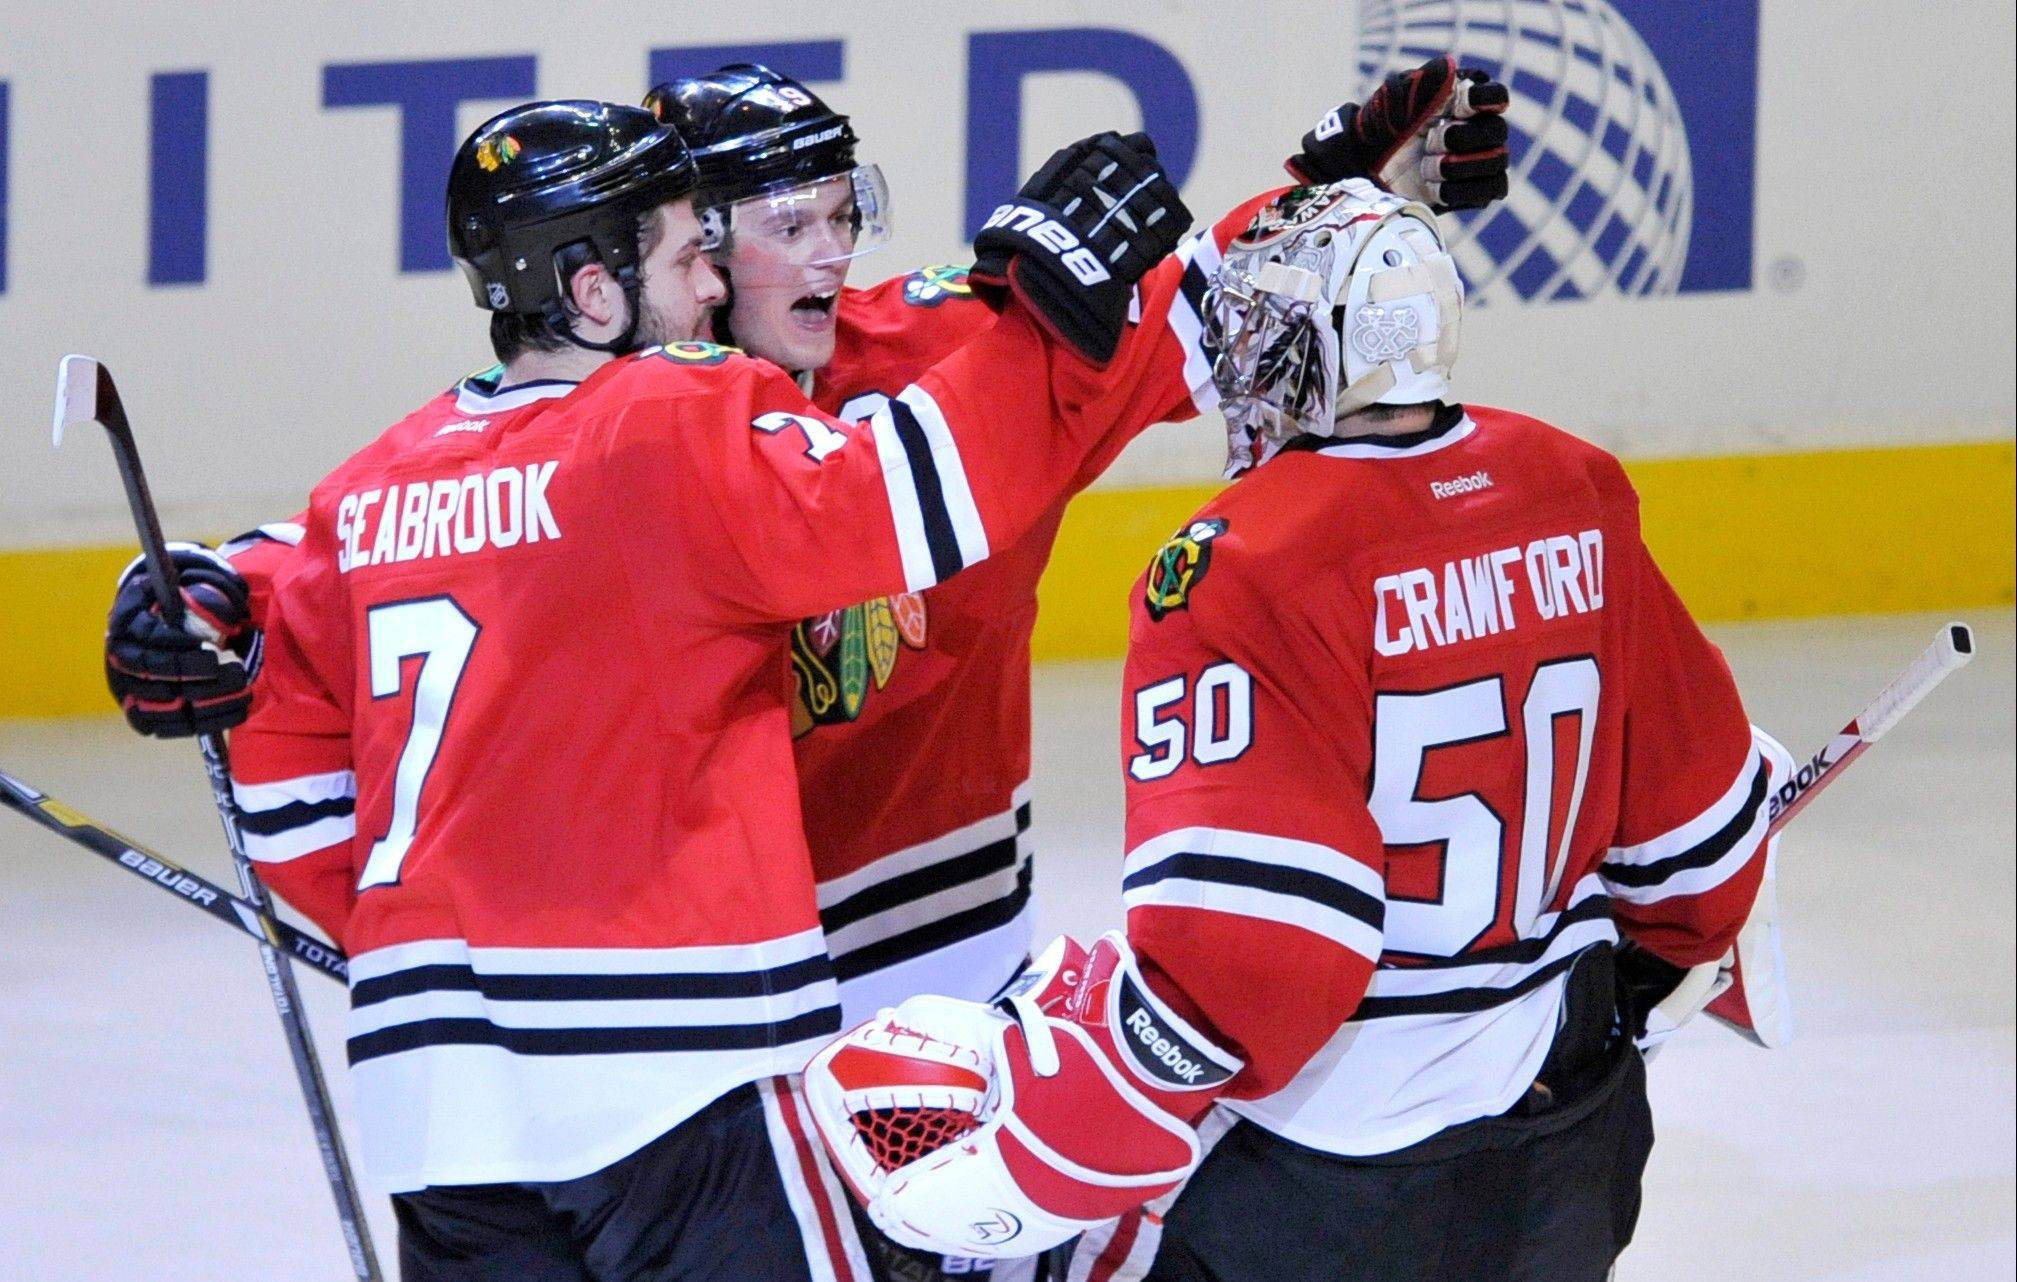 Goalie Corey Crawford celebrates with Brent Seabrook and Jonathan Toews after the Blackhawks rallied to beat the Red Wings in a shootout Friday night at the United Center.